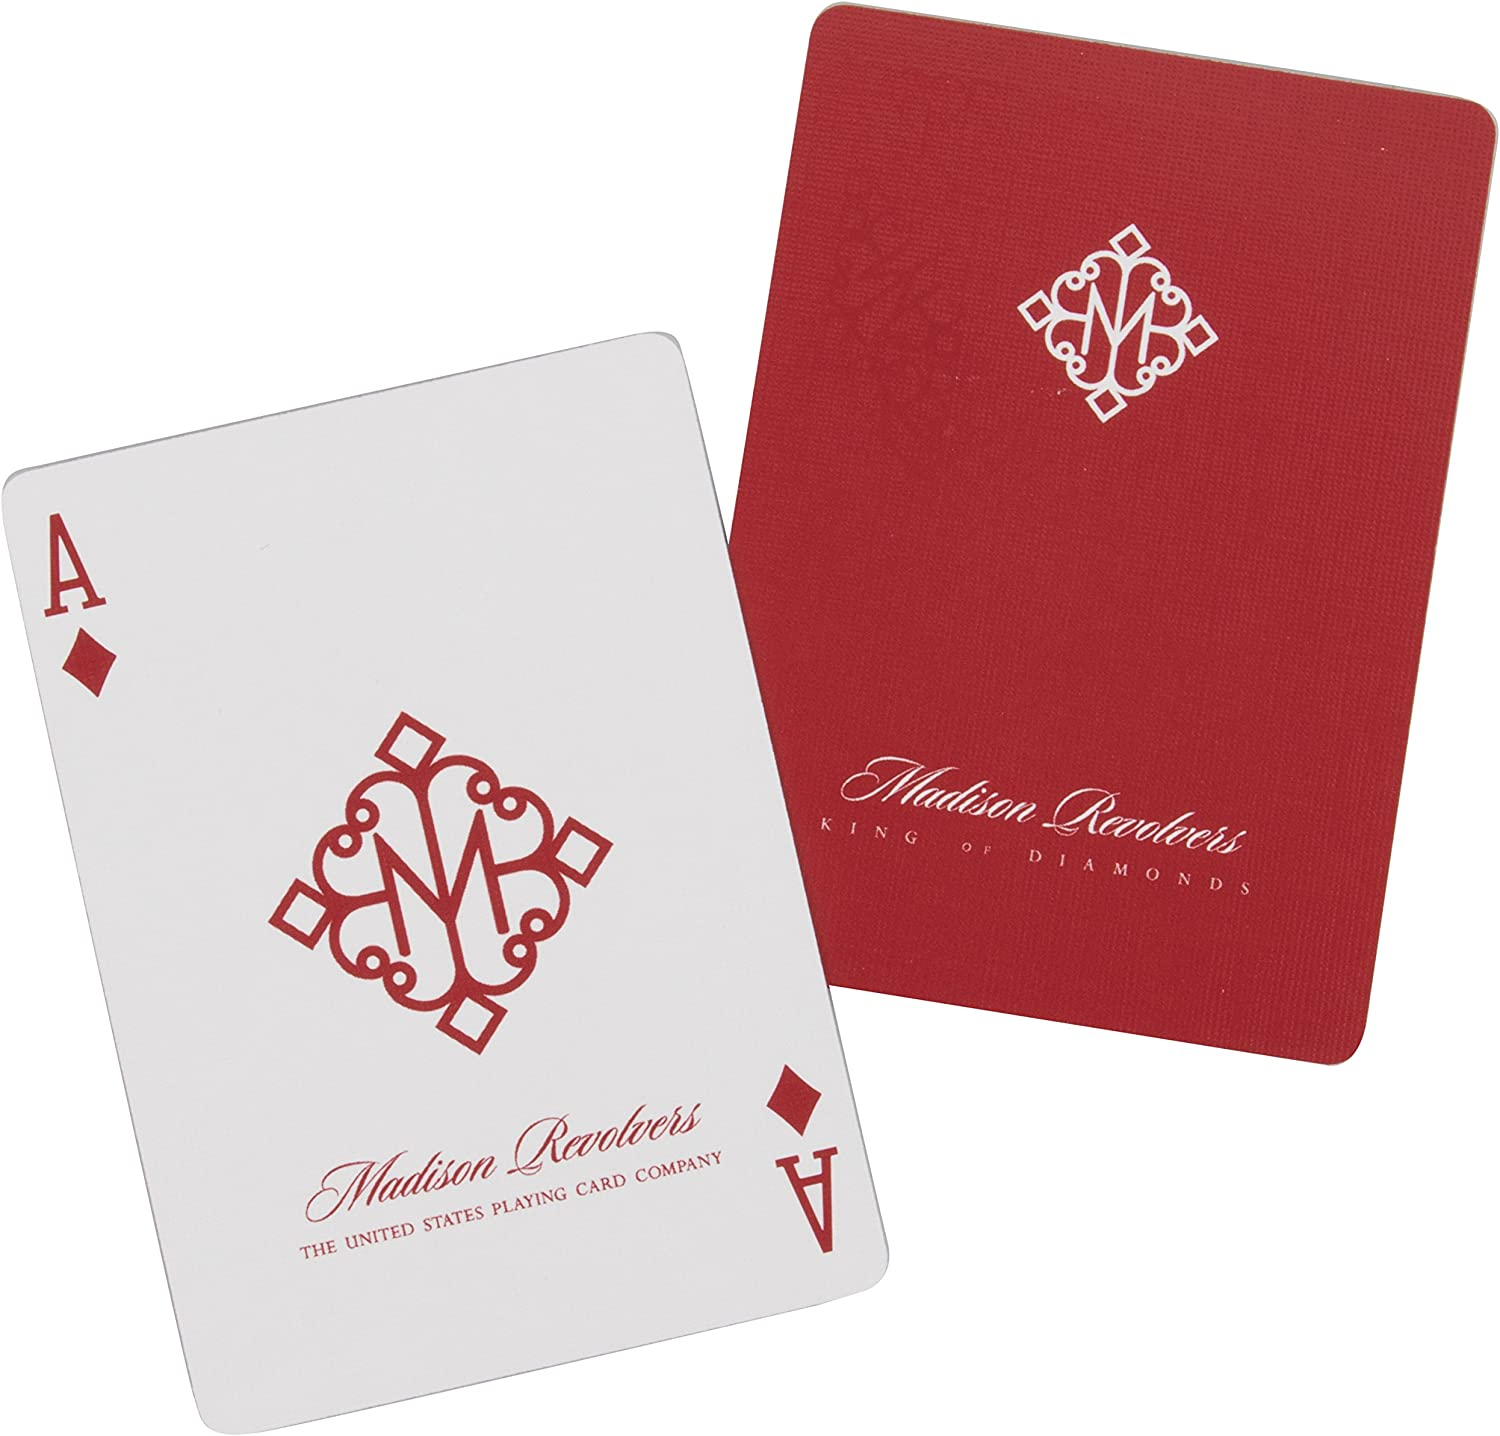 Bicycle Ellusionist Green Knights Ramsay RARE US Playing Cards Magic Poker New